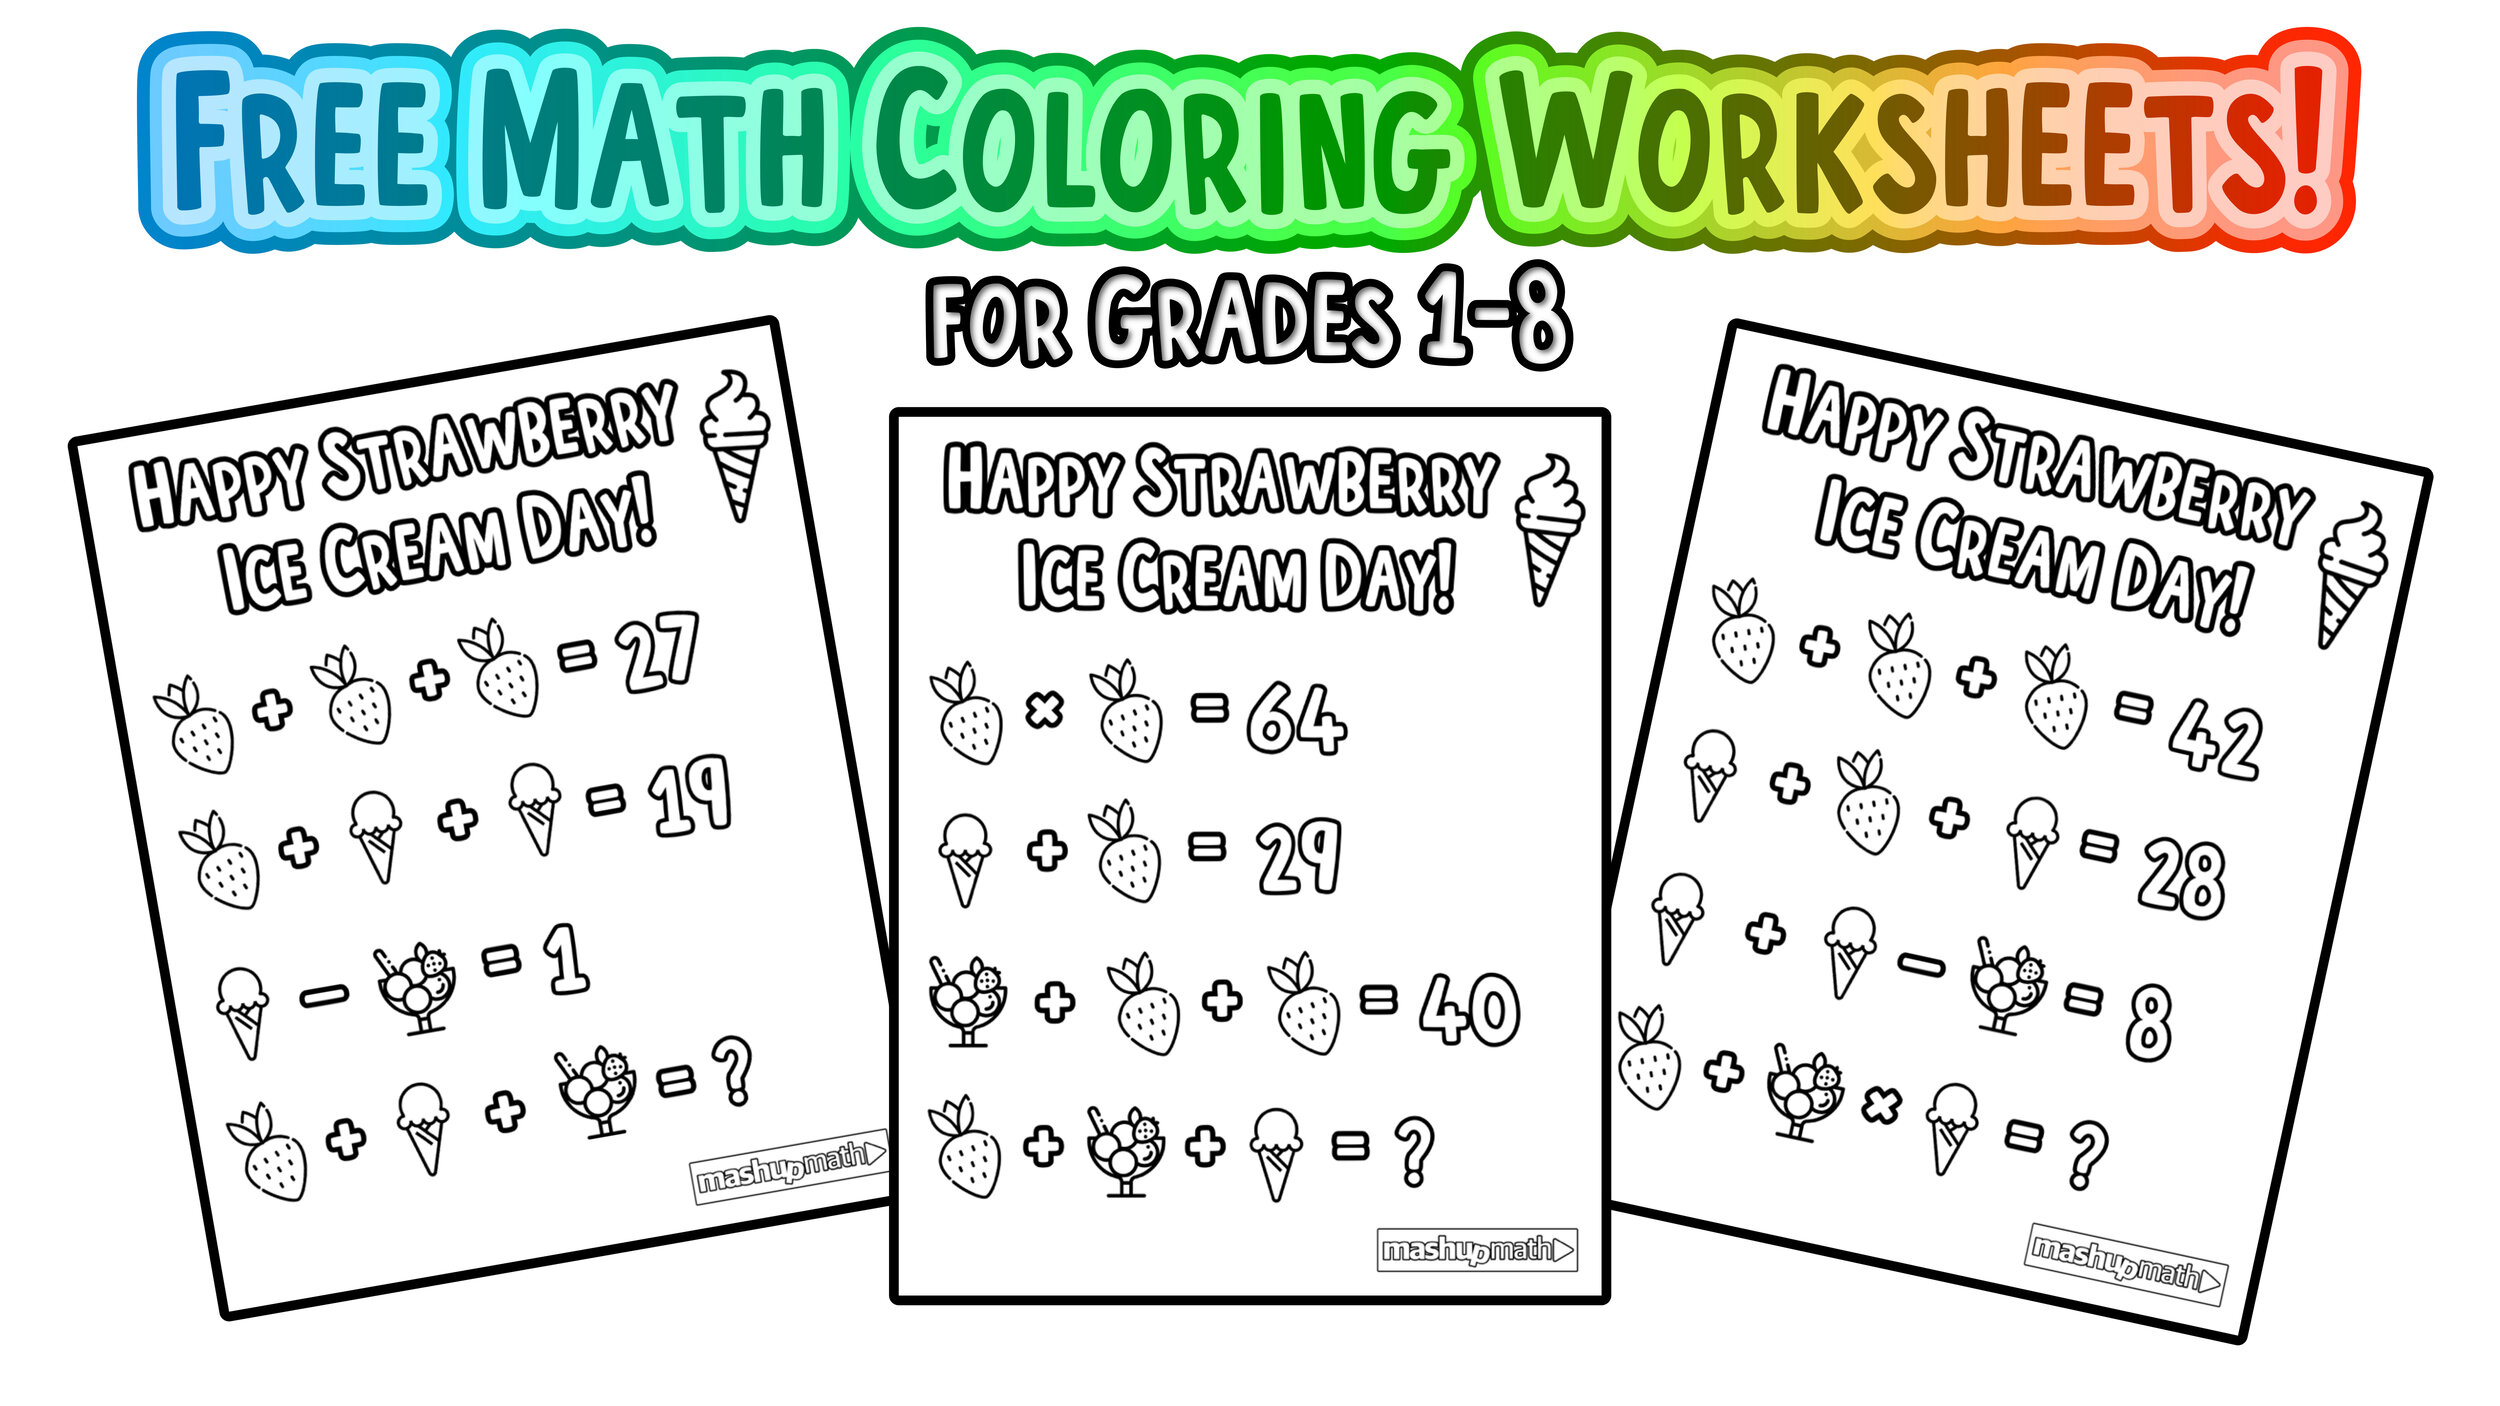 Free Math Coloring Pages for Grades 1-8 — Mashup Math [ 844 x 1500 Pixel ]